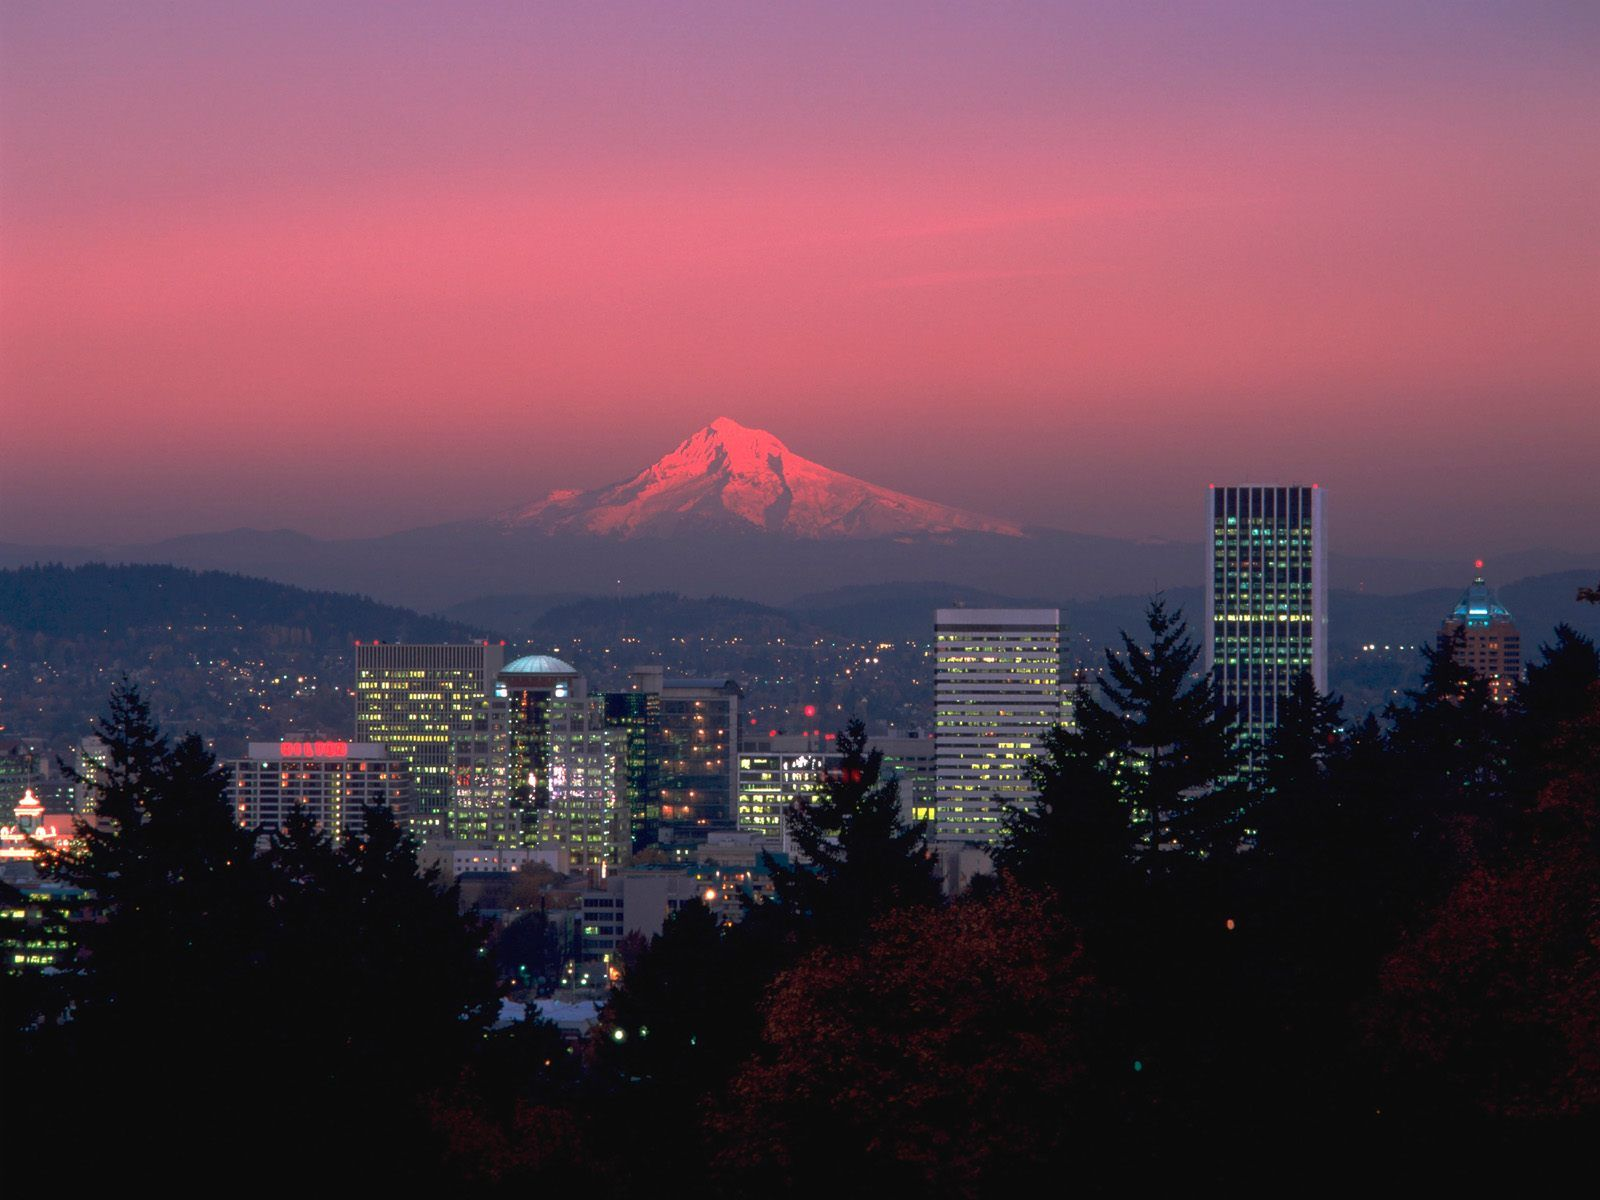 portland, or - mount hood in the background | favorite places